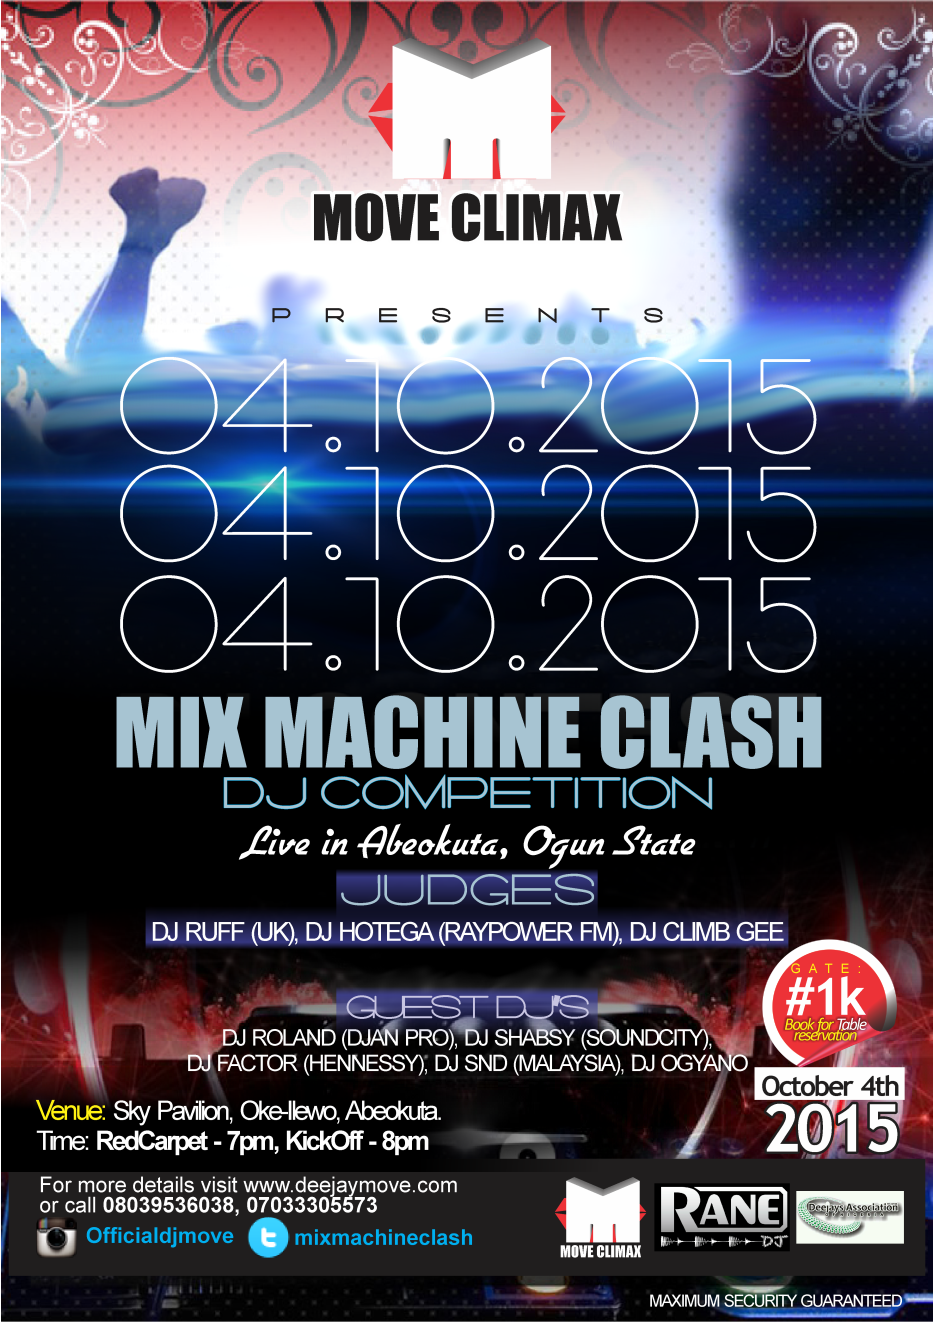 MIX MACHINE CLASH (DJ CHAMPIONSHIP) ~ DJ MOVE